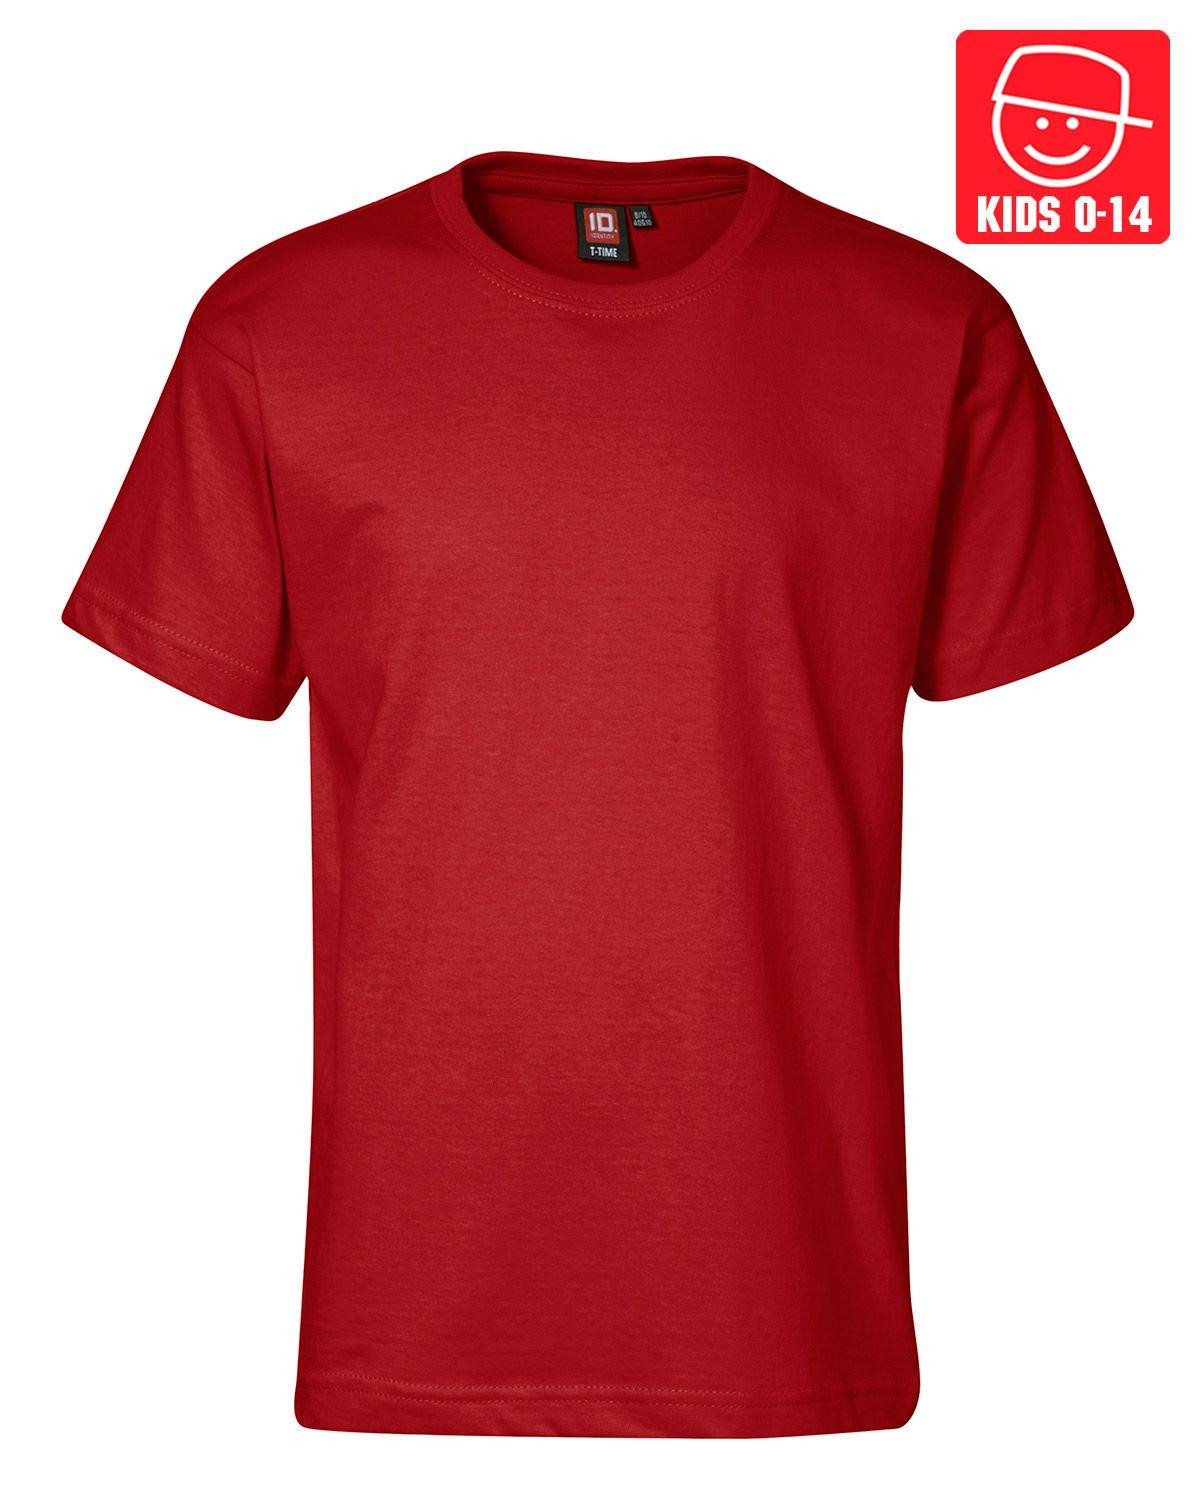 Image of   ID T-TIME T-shirt (Rød, 158)